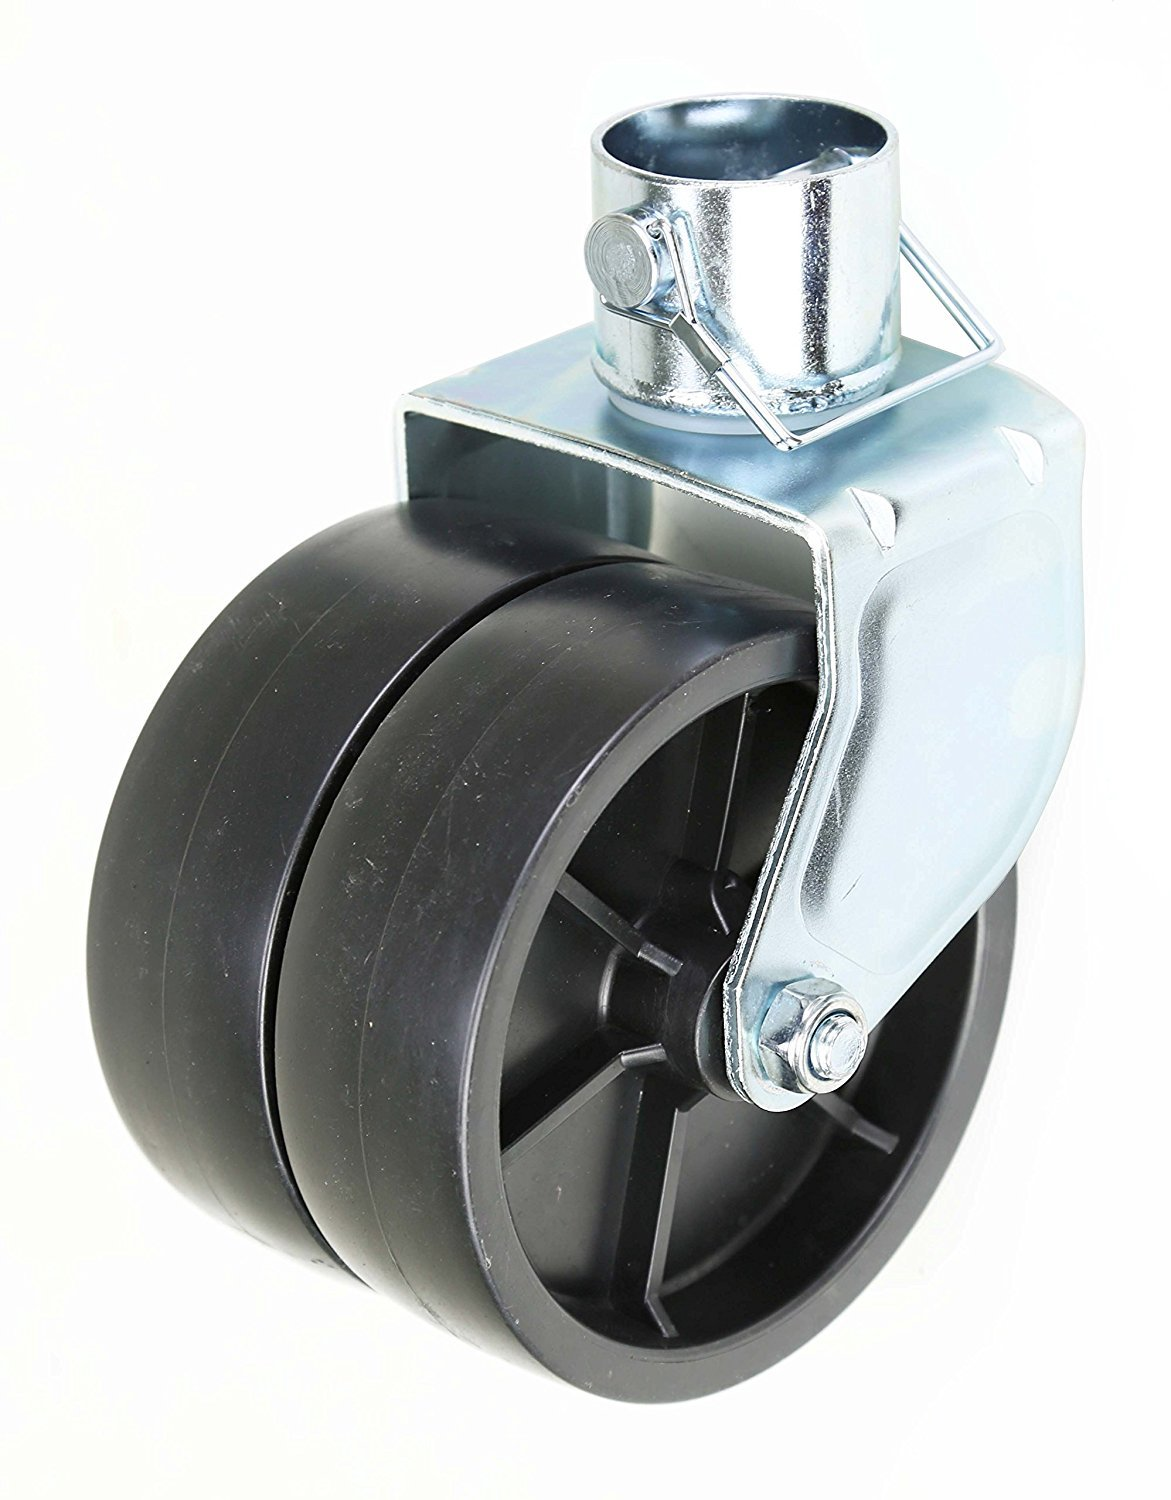 Jeremywell 6 Inch Trailer Swirl Jack Caster Wheel 2000lbs Capacity with Pin by Jeremywell